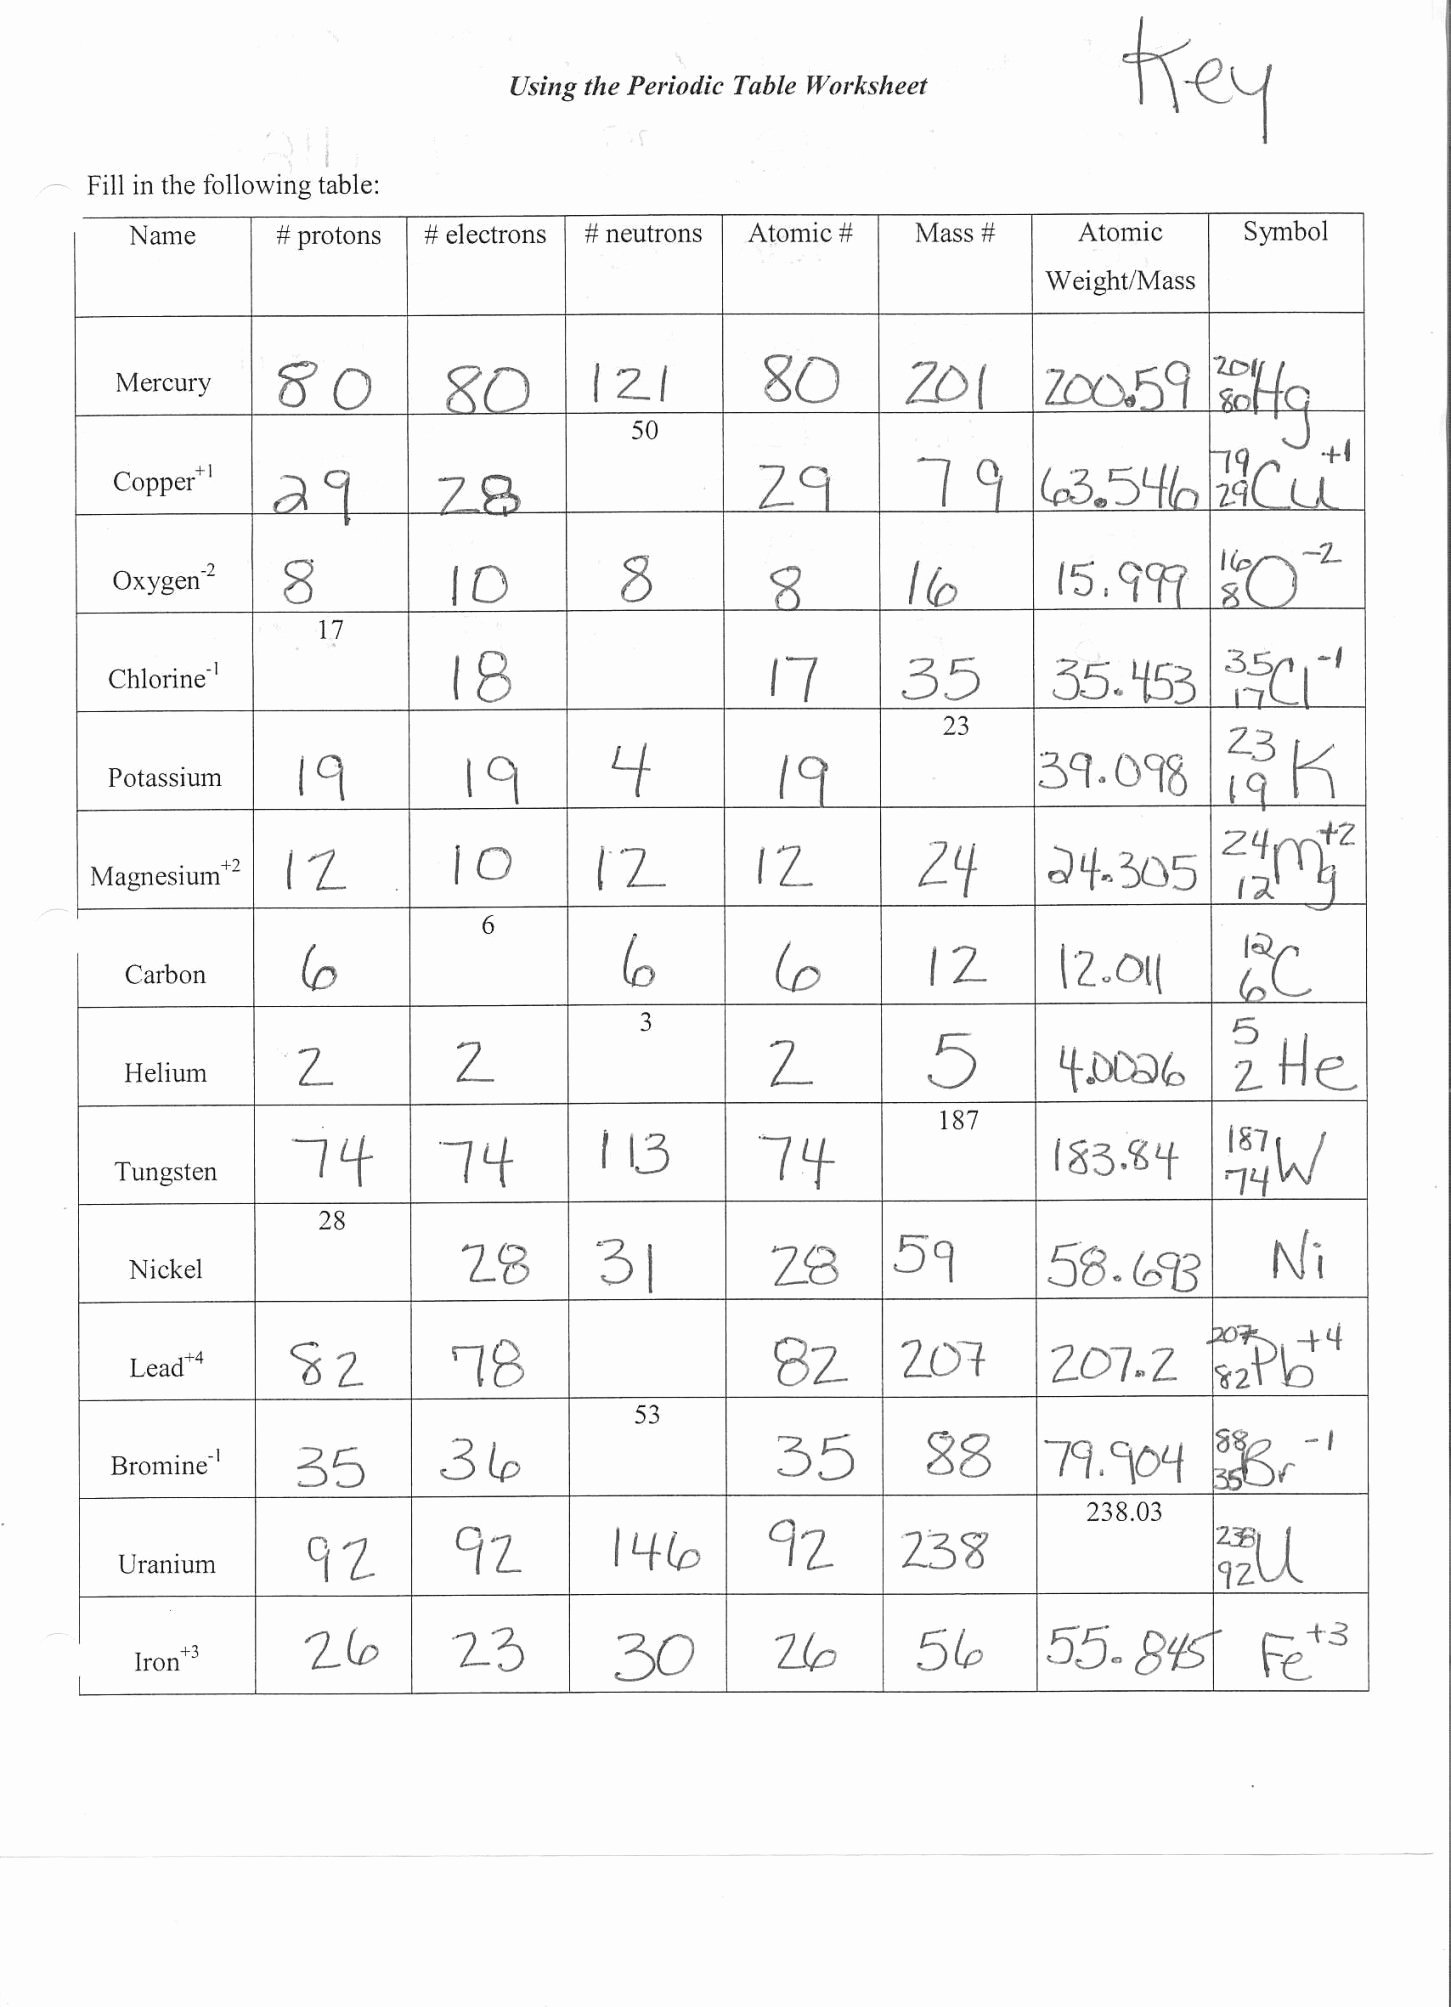 Basic atomic Structure Worksheet Best Of Basic atomic Structure Worksheet Key